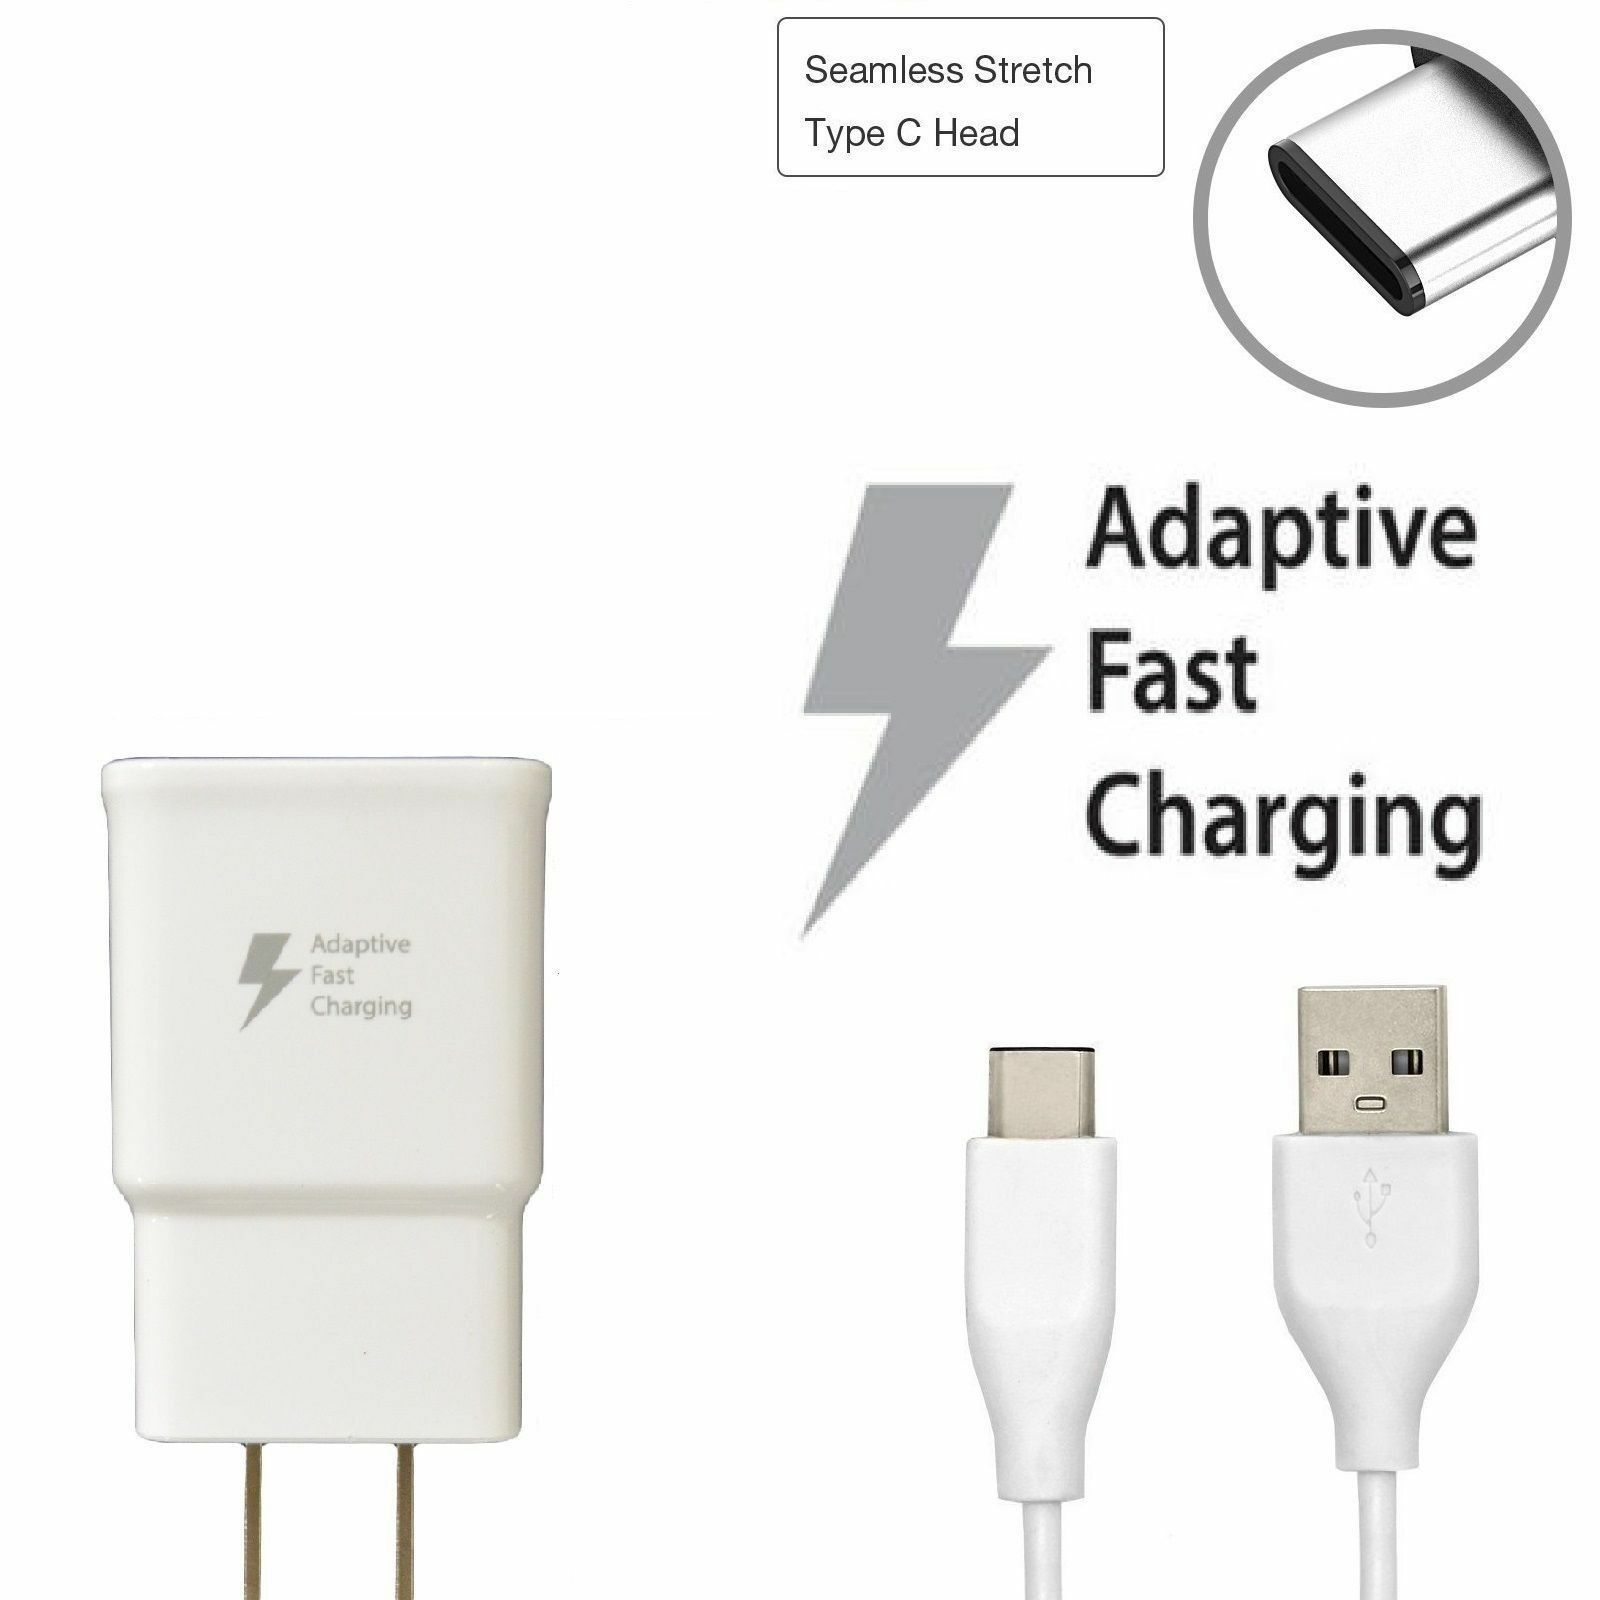 Adaptive Rapid Fast Charge Wall Charger with Cable for Samsung - White